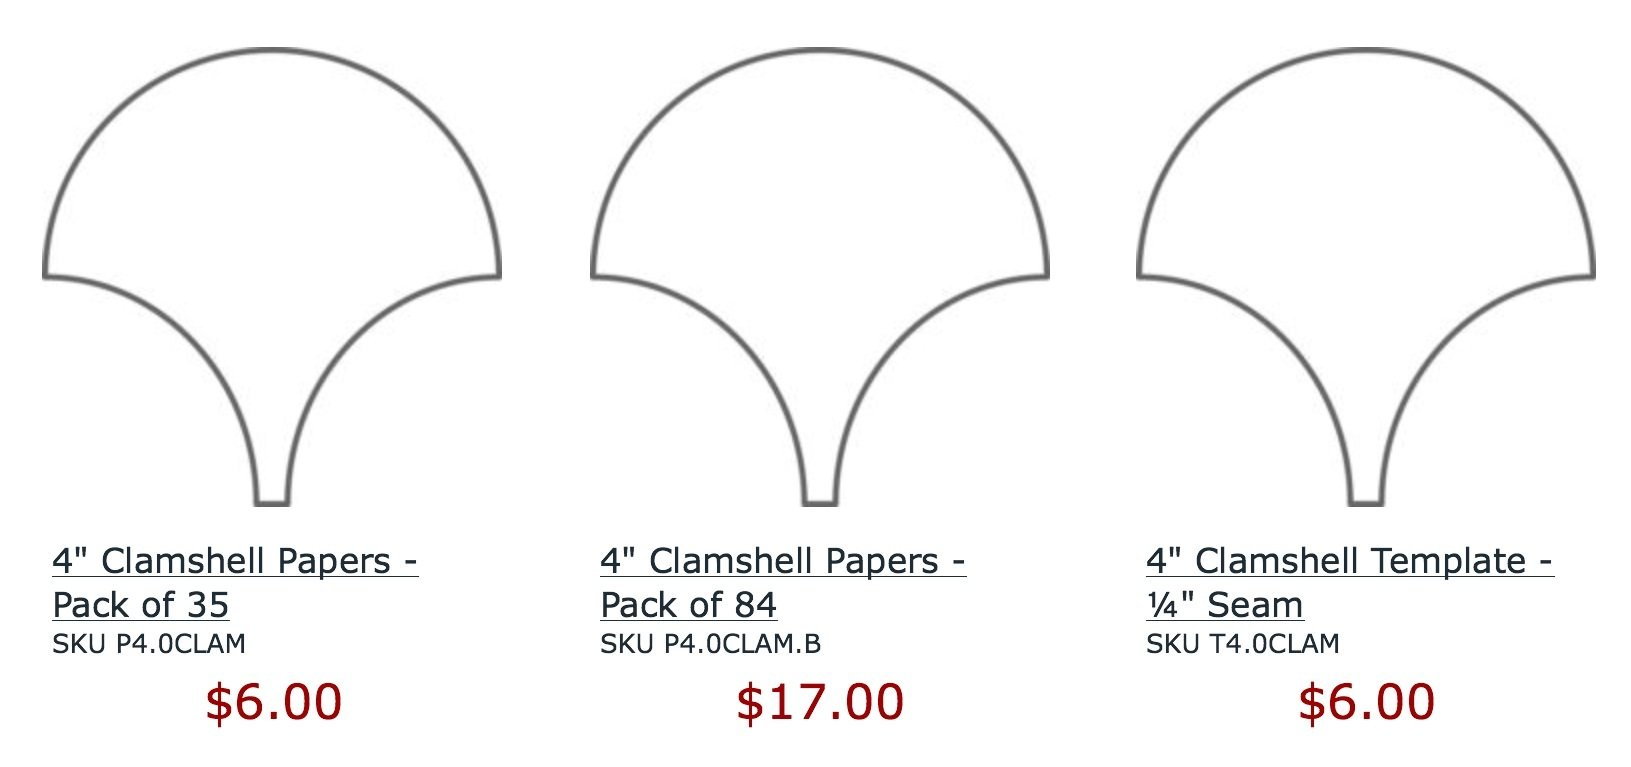 Clamshell papers 4 pack of 84